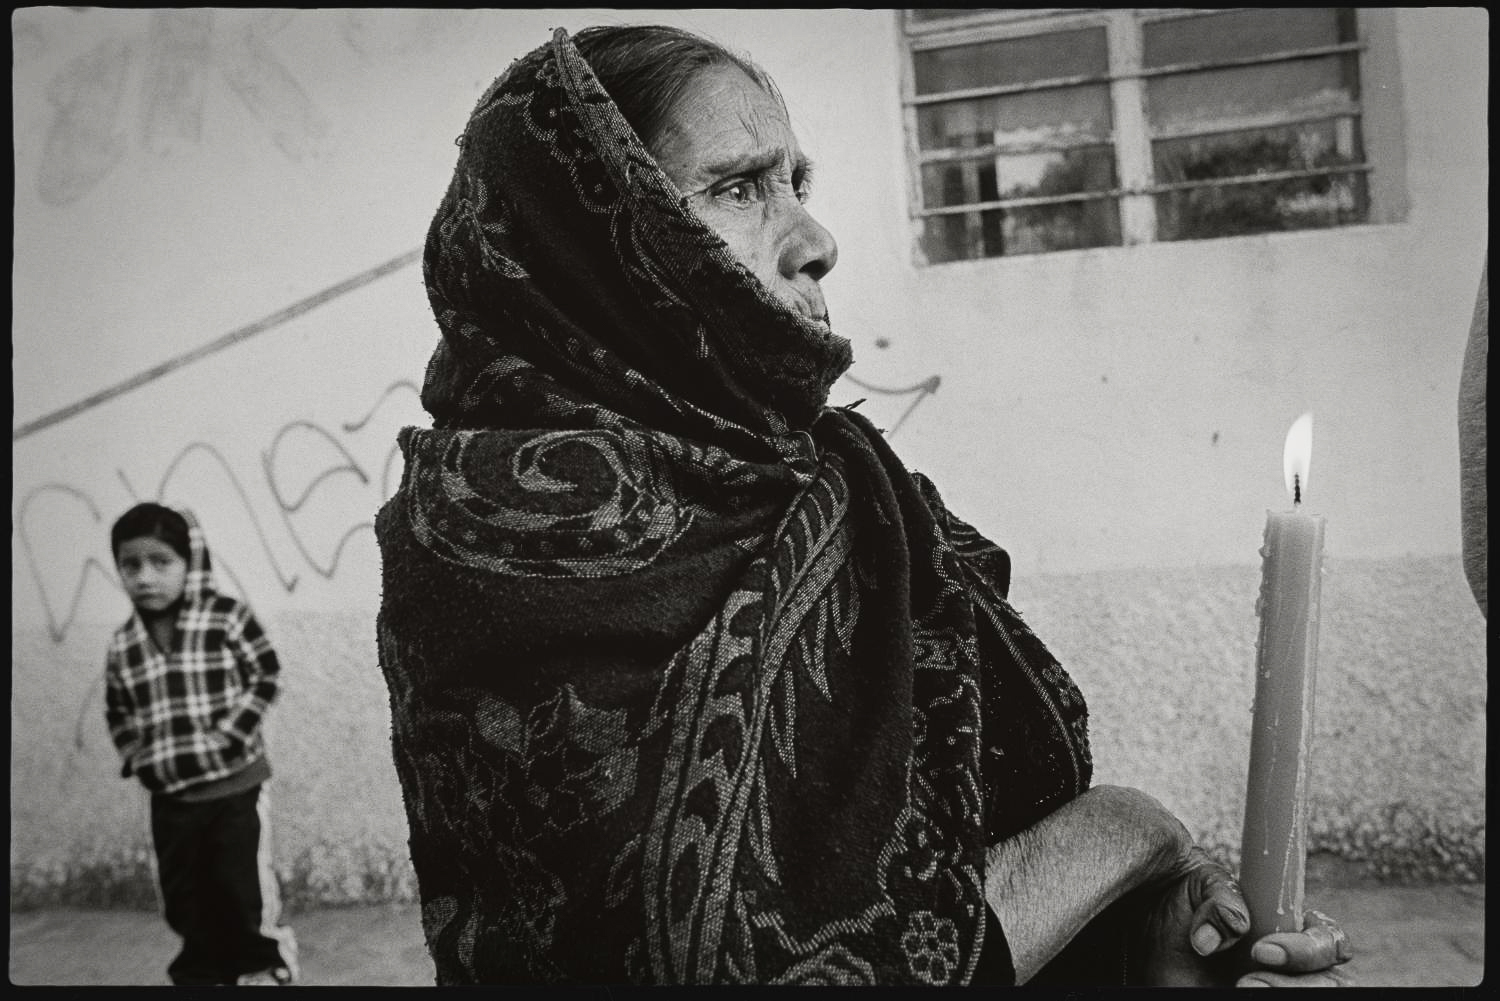 2_Woman in procession I, Teotitlan del Valle_2015.jpg